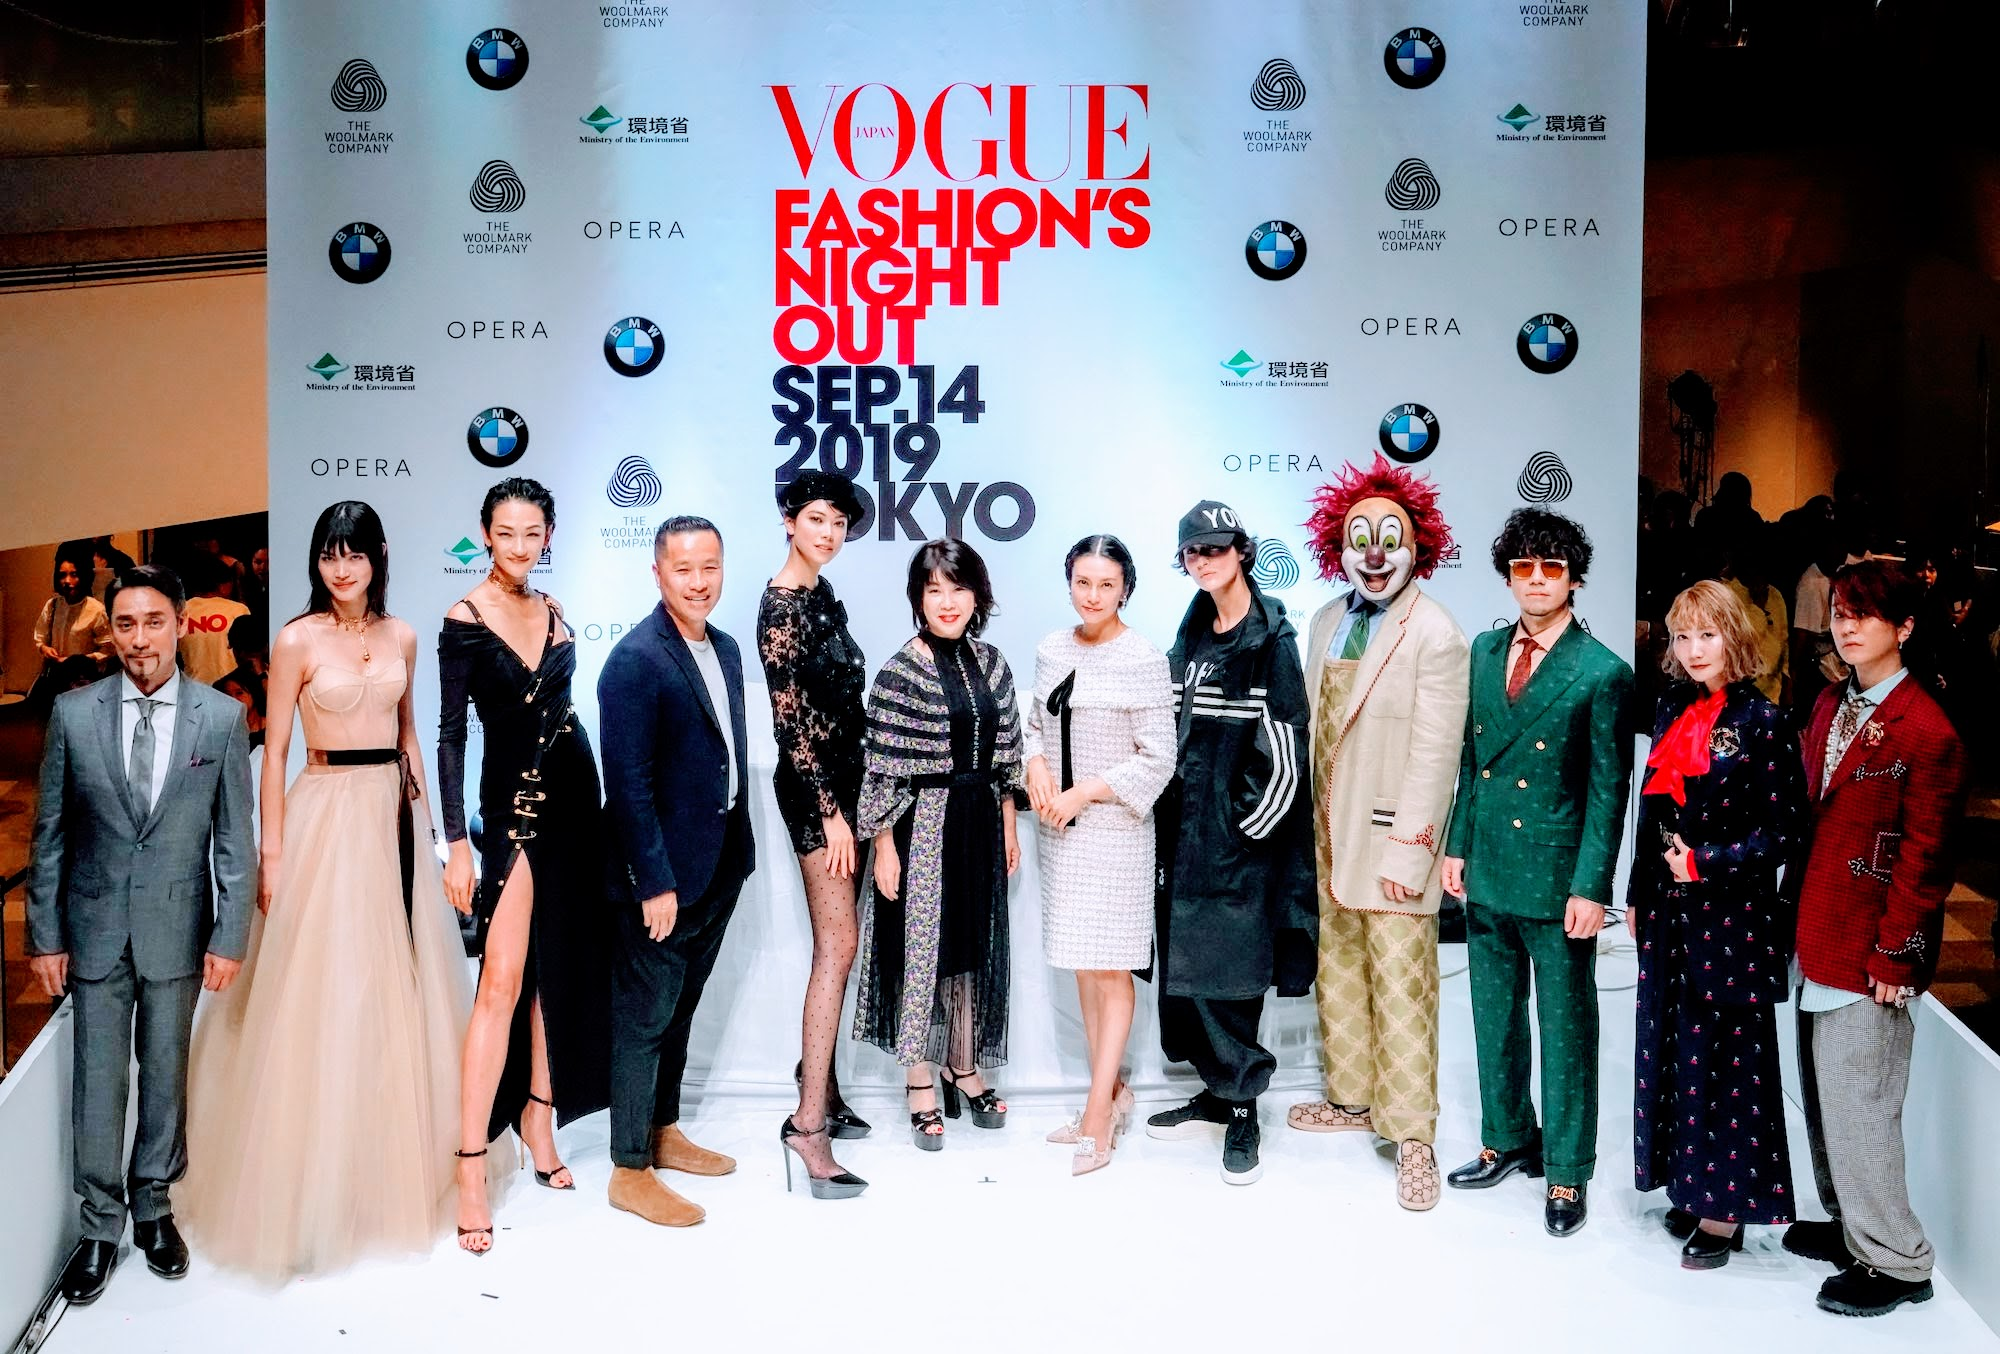 「VOGUE FASHION'S NIGHT OUT 2019」